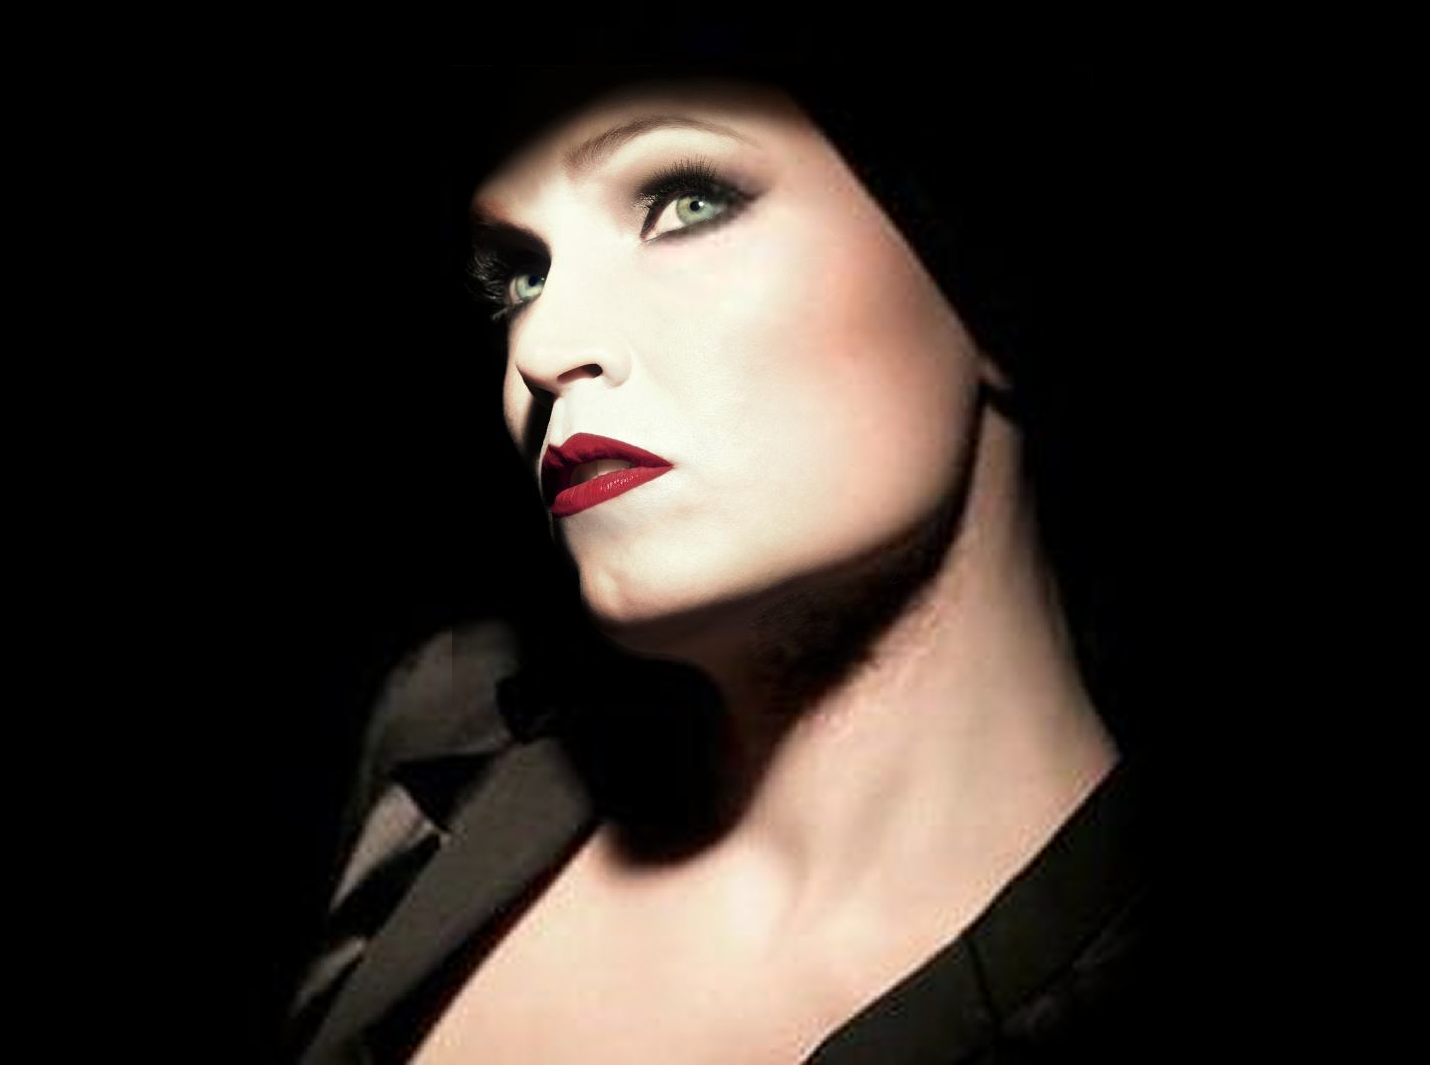 Tarja Tarja Photo 31871073 Fanpop fanclubs